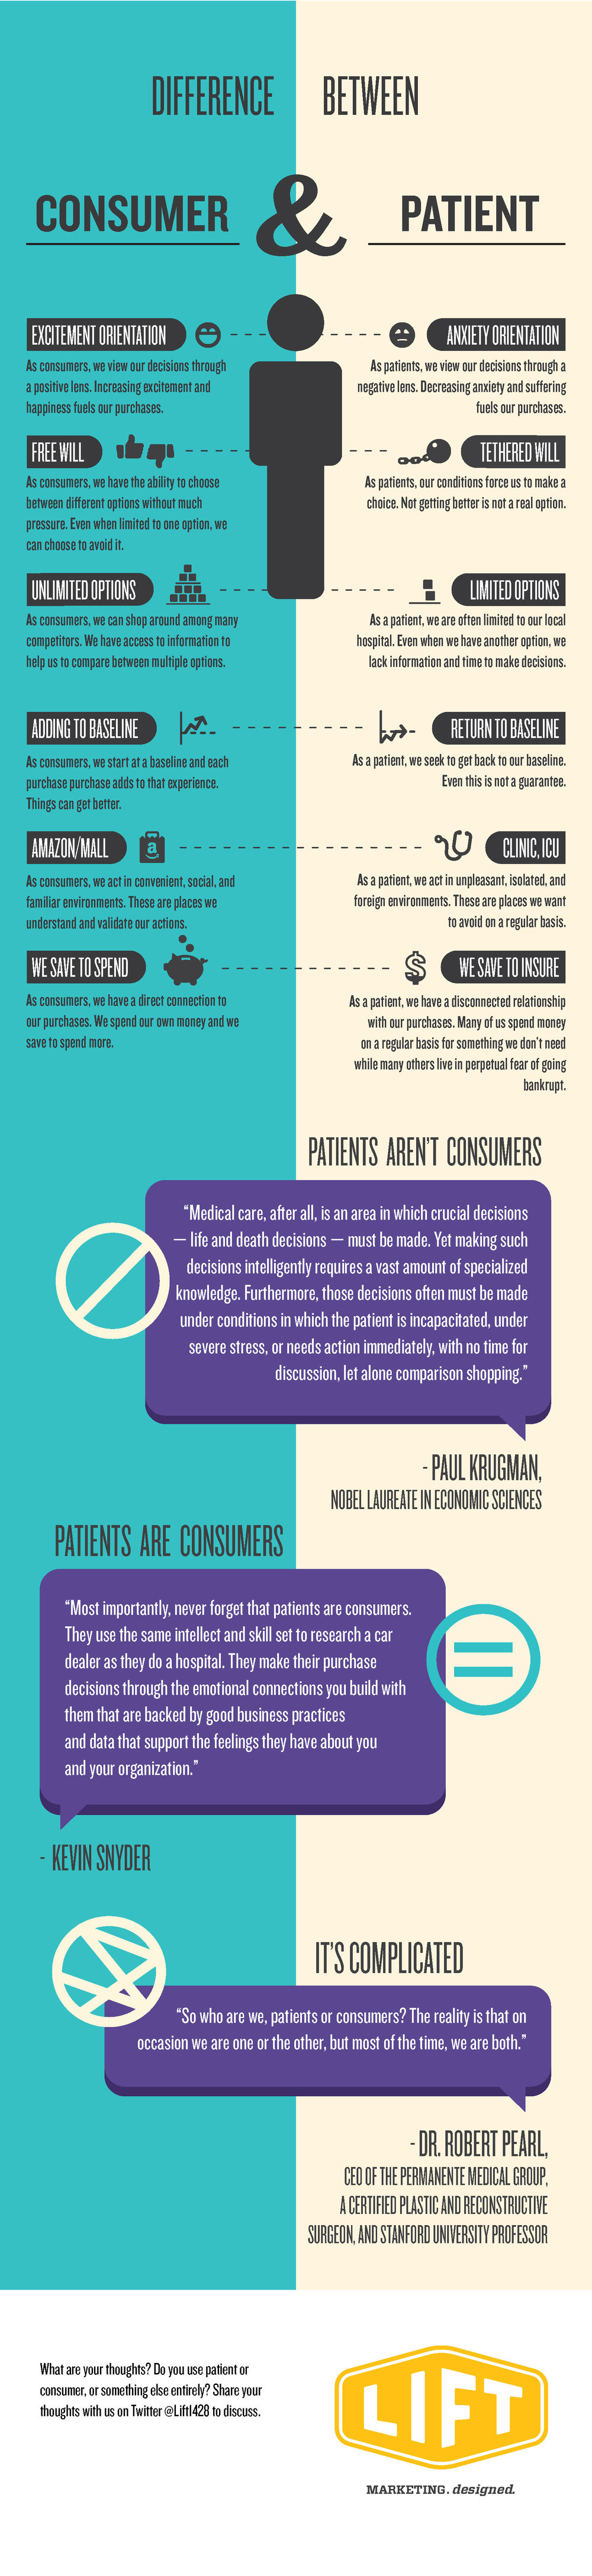 consumer-patient-info-graphic.jpg